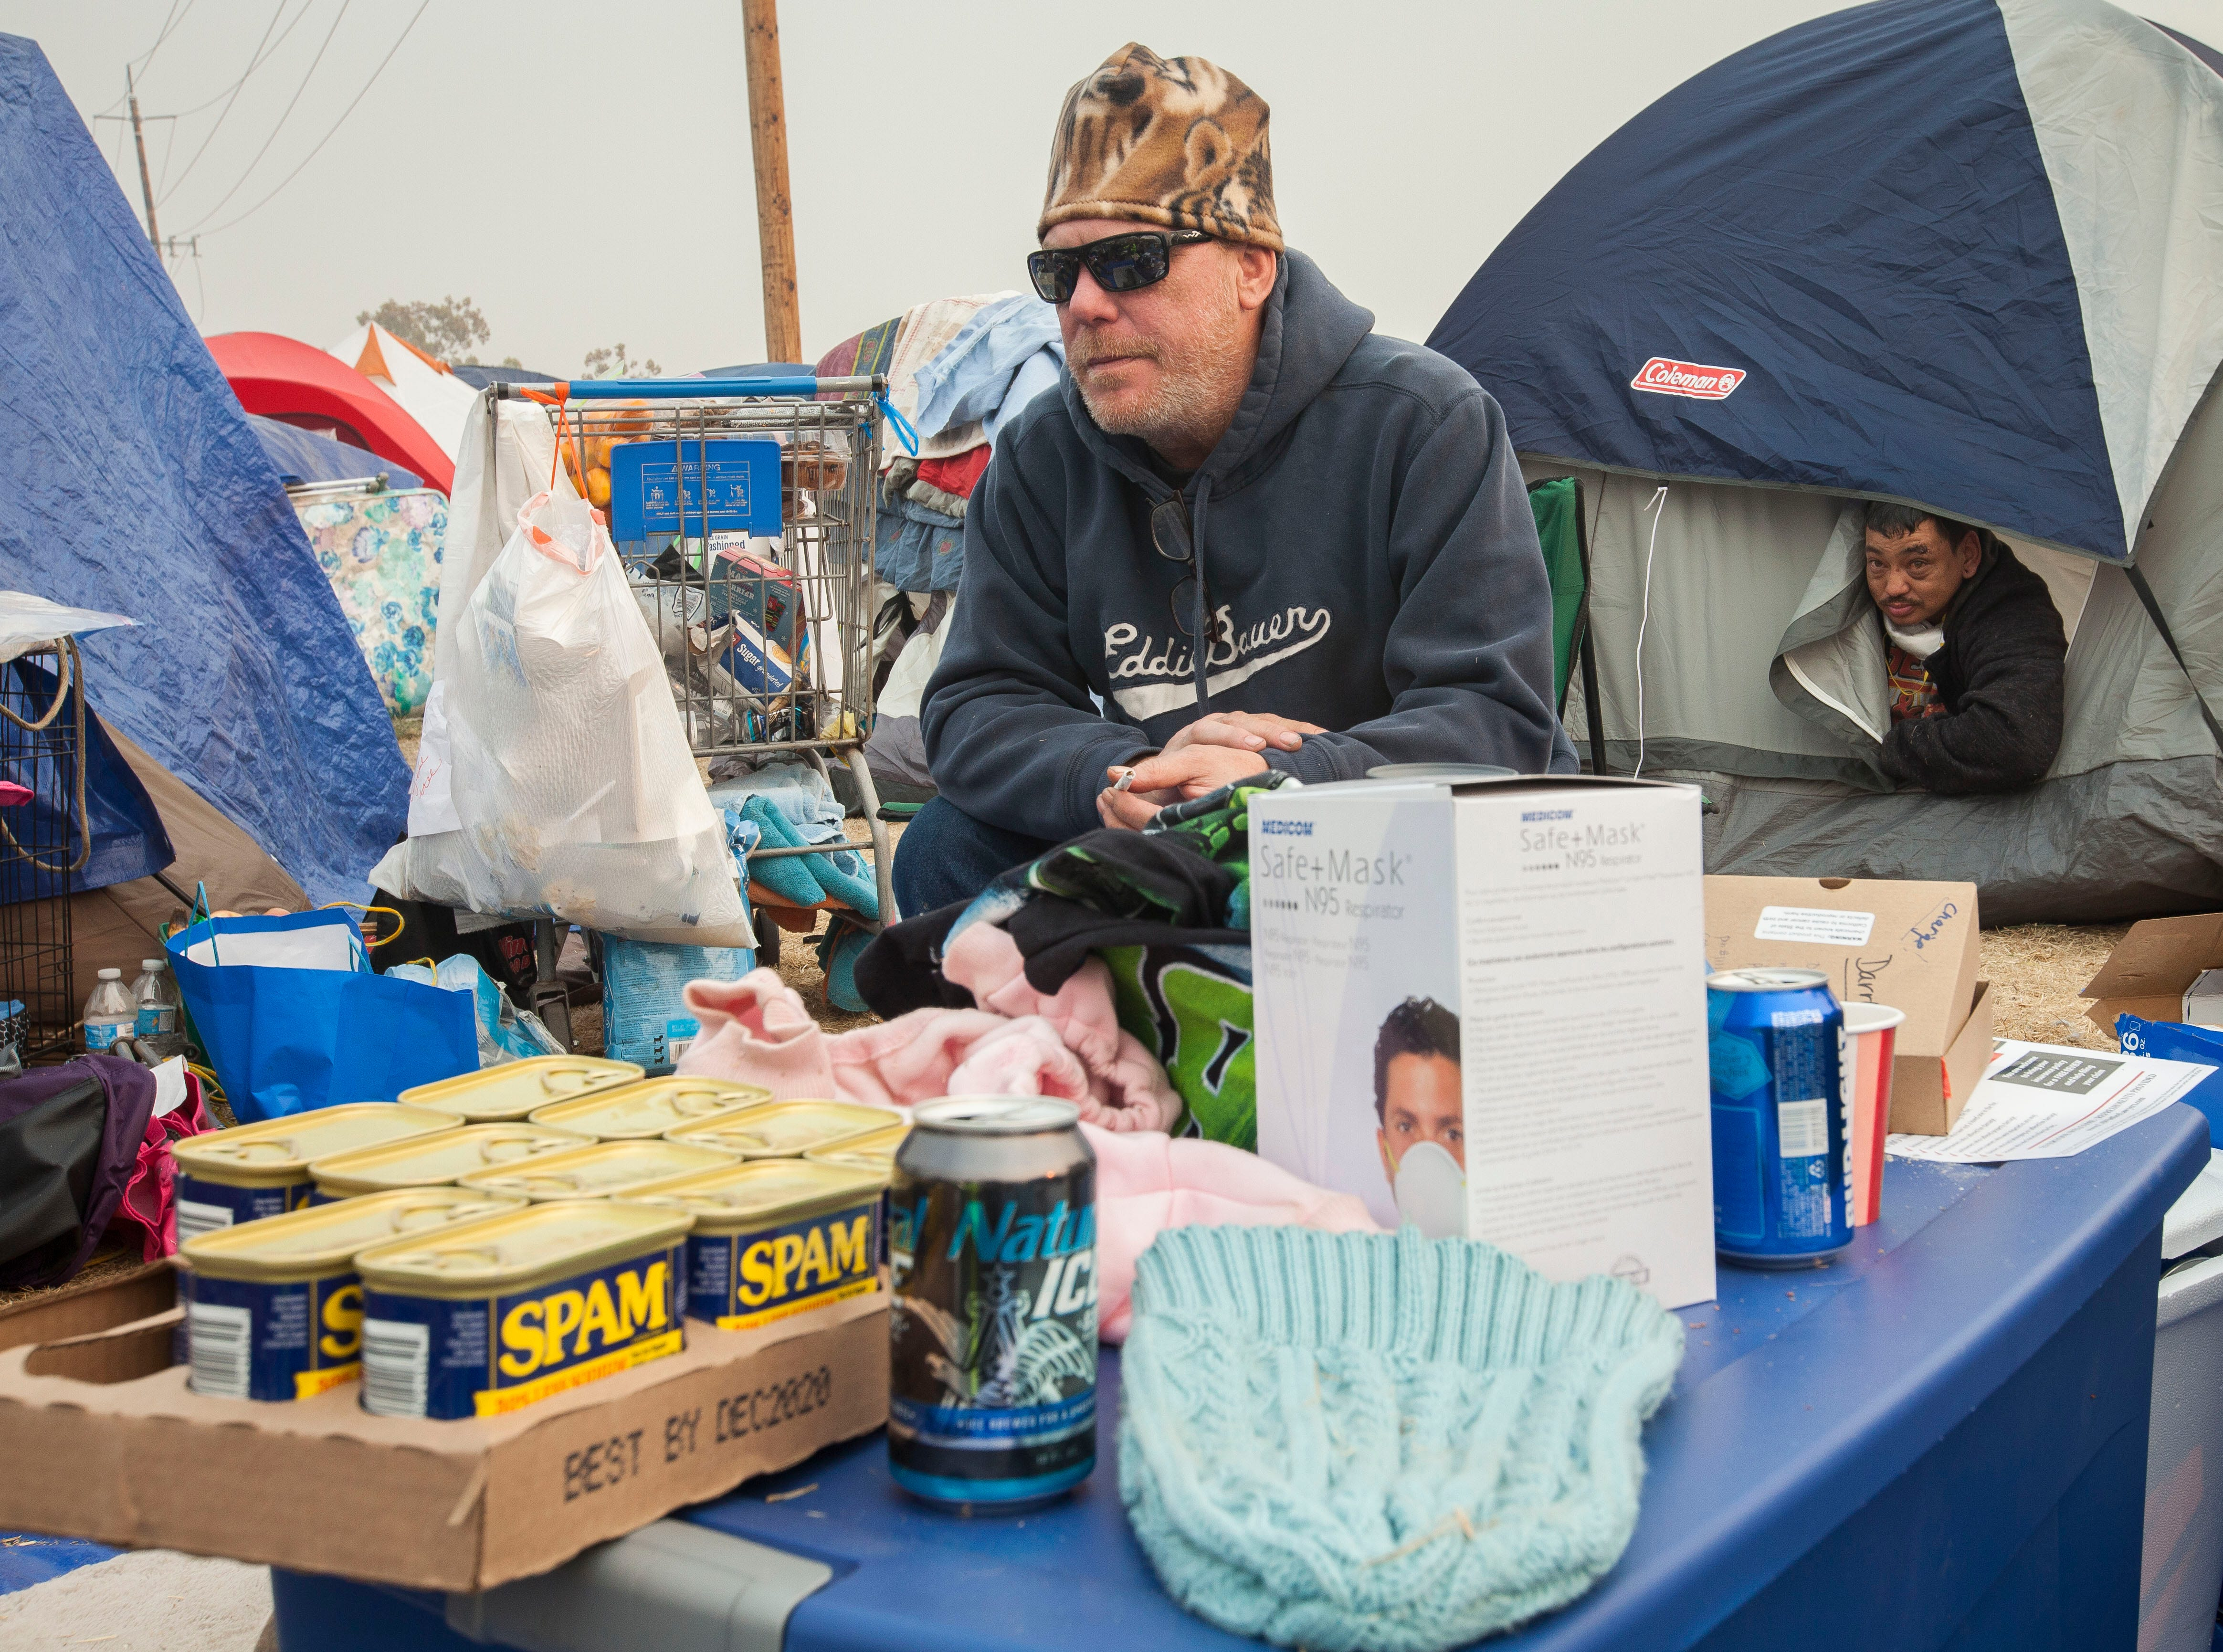 Daryl Merritt, 55, of Paradise, sits in his tent compound in a field next to the Walmart in Chico, CA, Wednesday, November 14, 2018. Merritt has no idea if his home survived the Camp Fire but is making the best of things with new friends and neighbors.